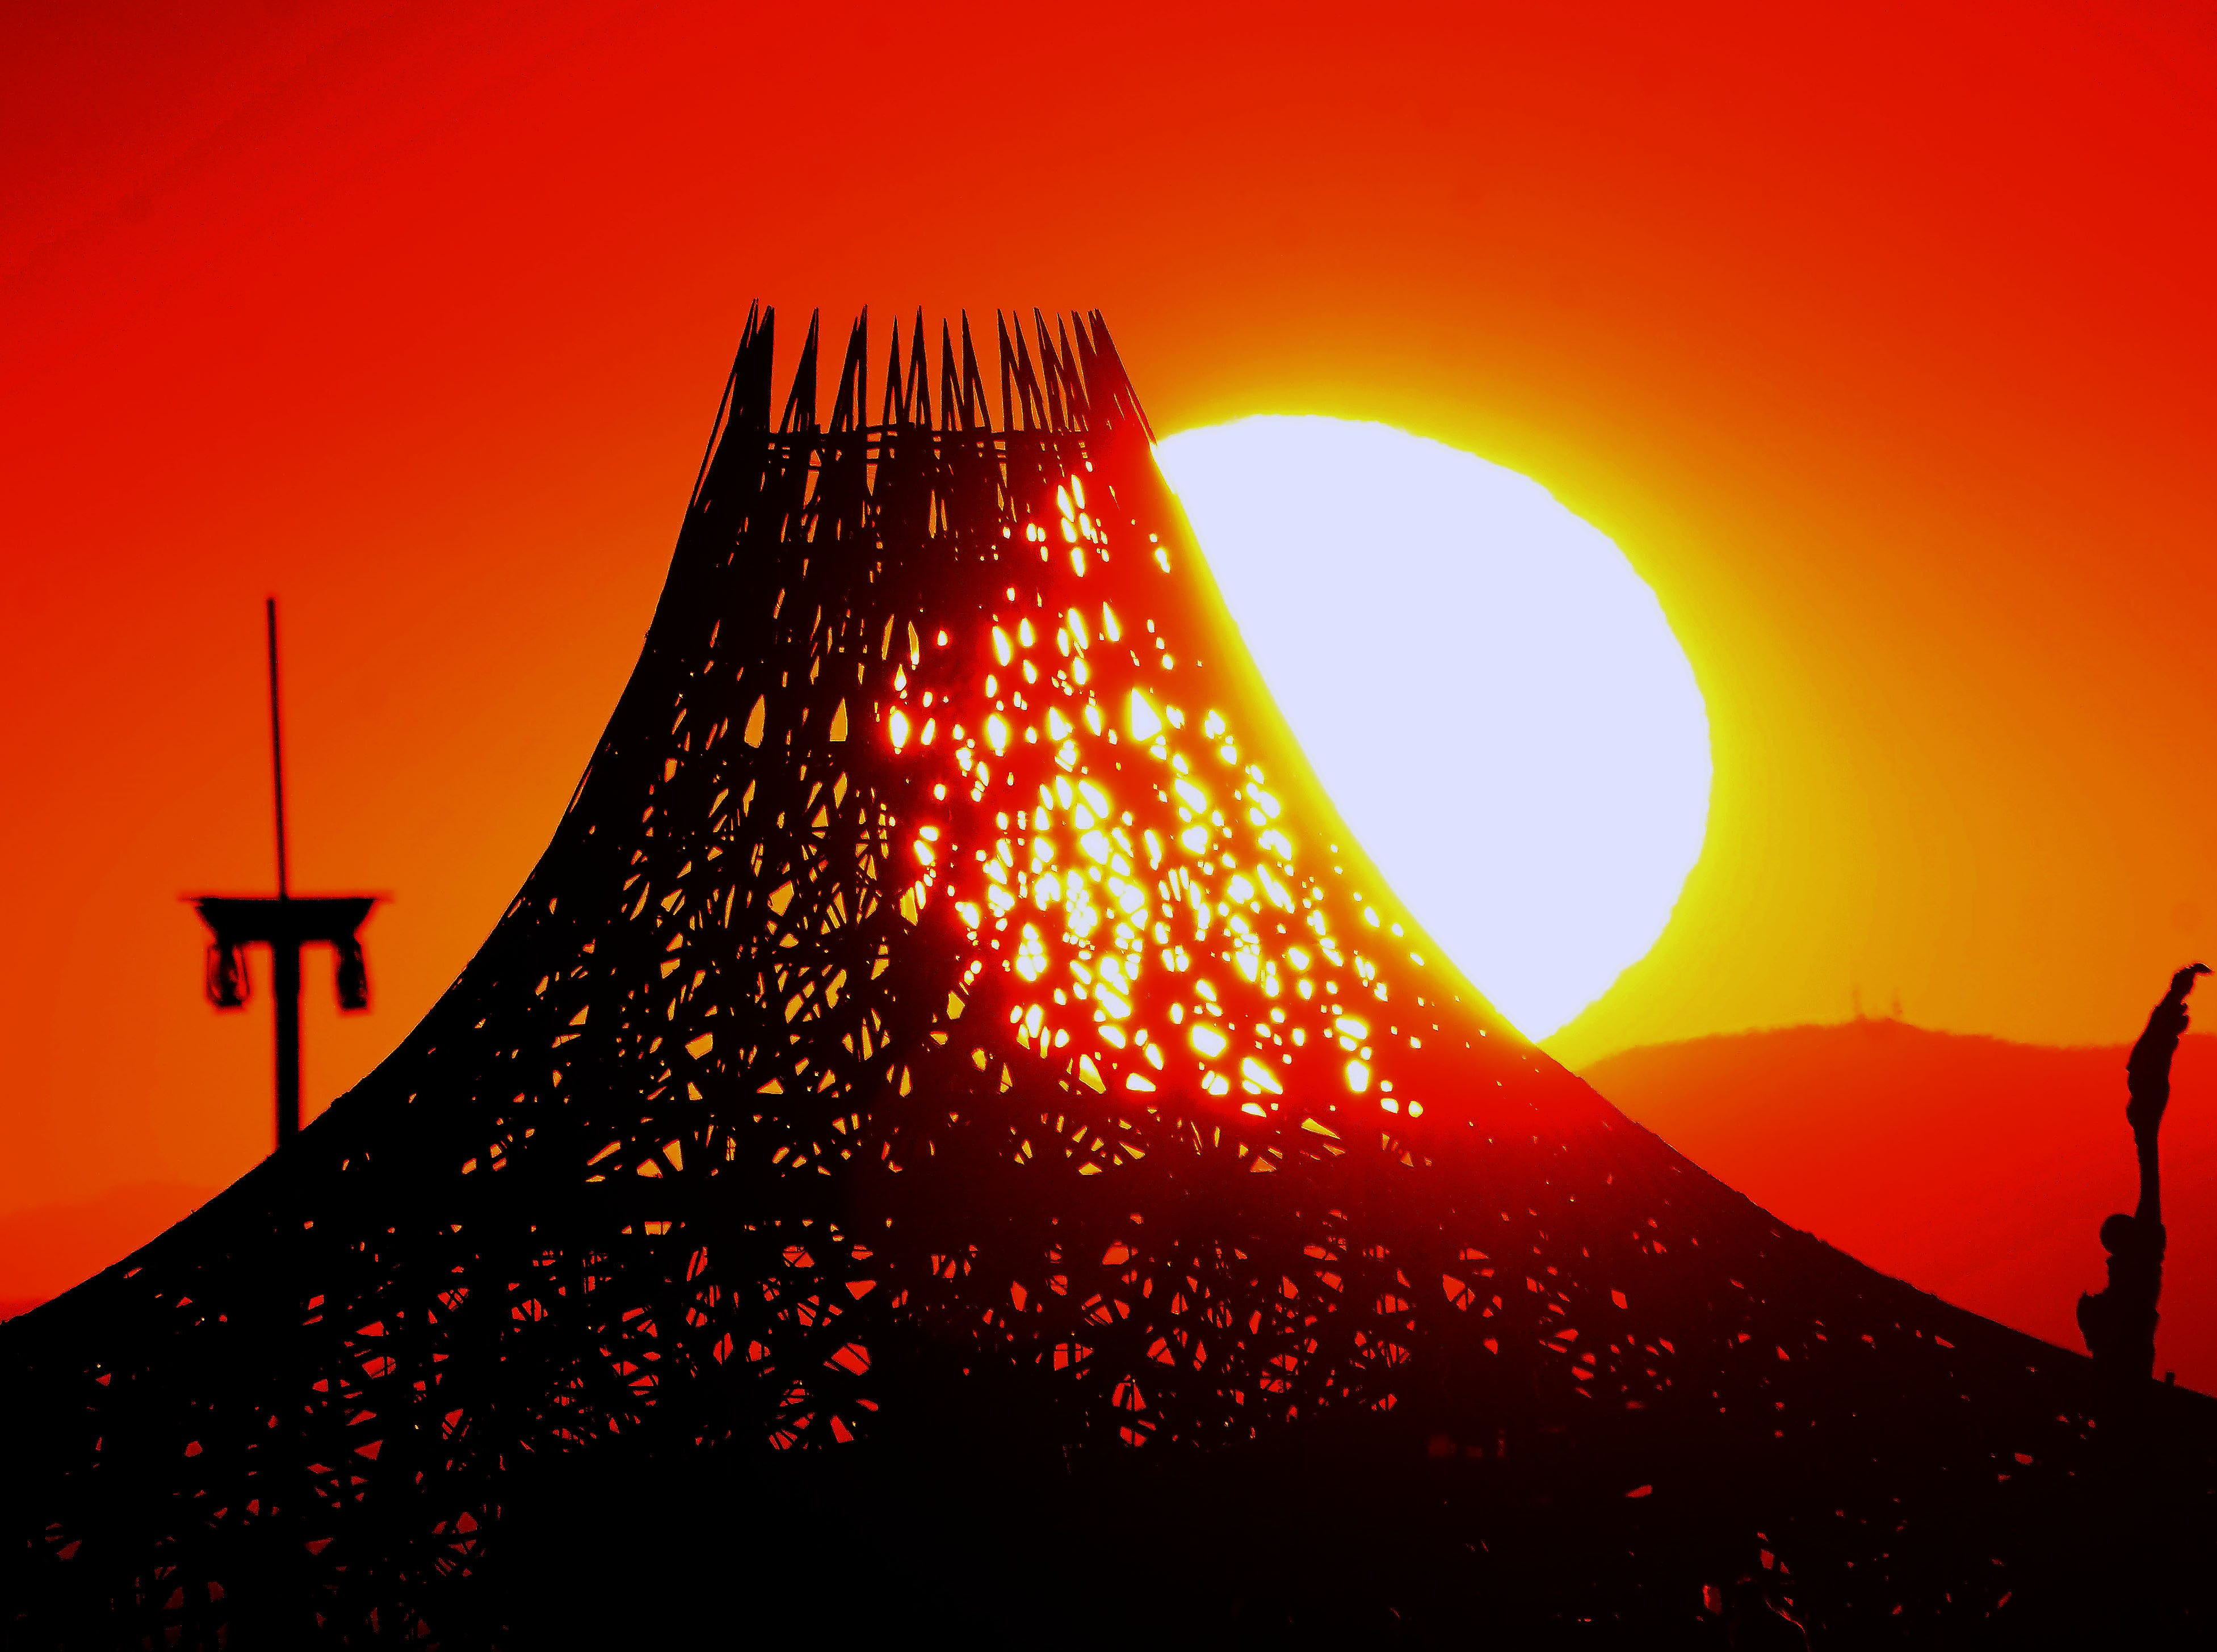 The morning sun rises above the horizon to illuminate the wooden Temple building at Burning Man.